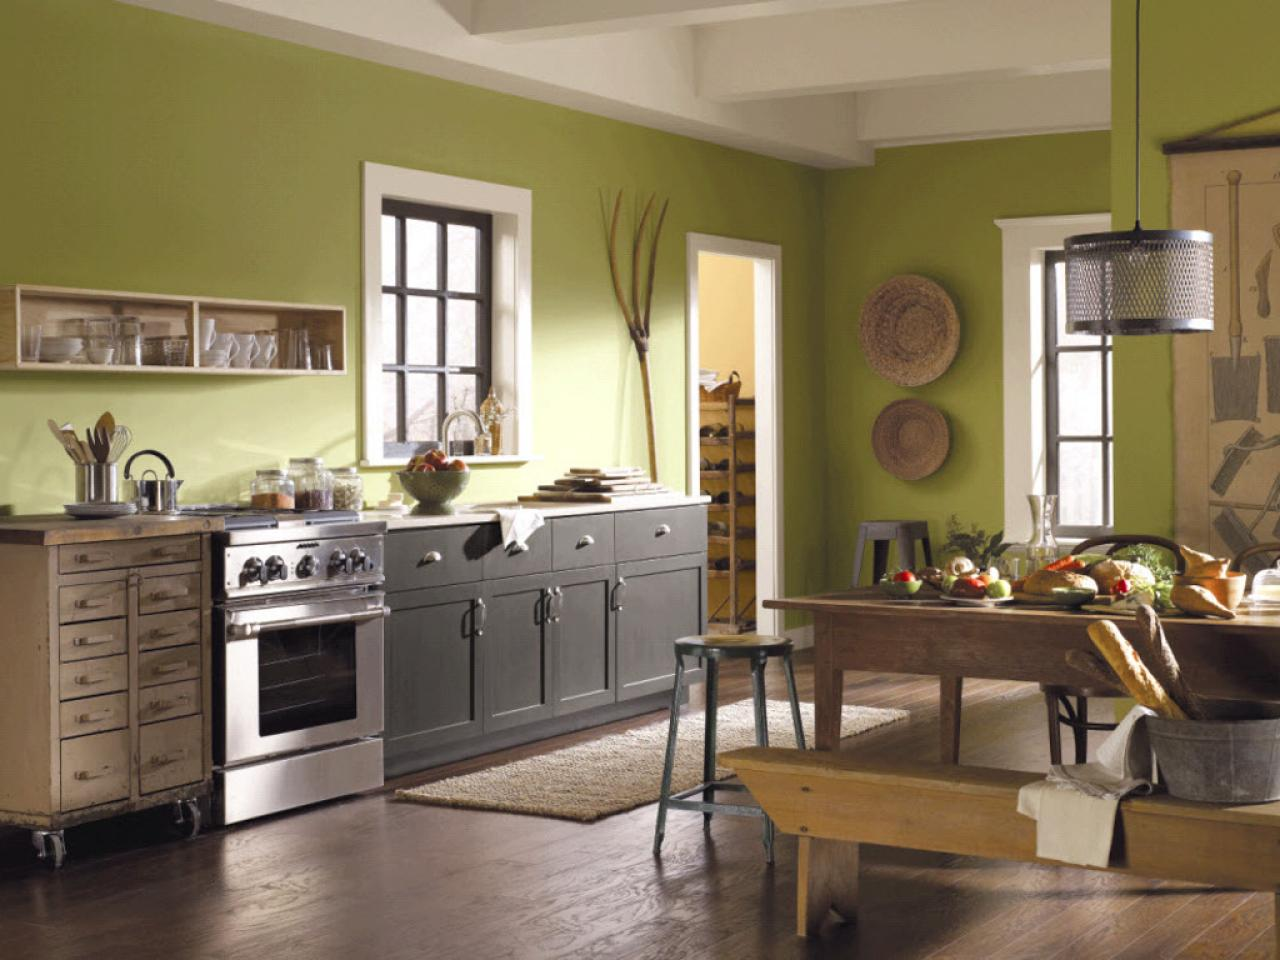 Green kitchen paint colors pictures ideas from hgtv hgtv for Kitchen wall color ideas